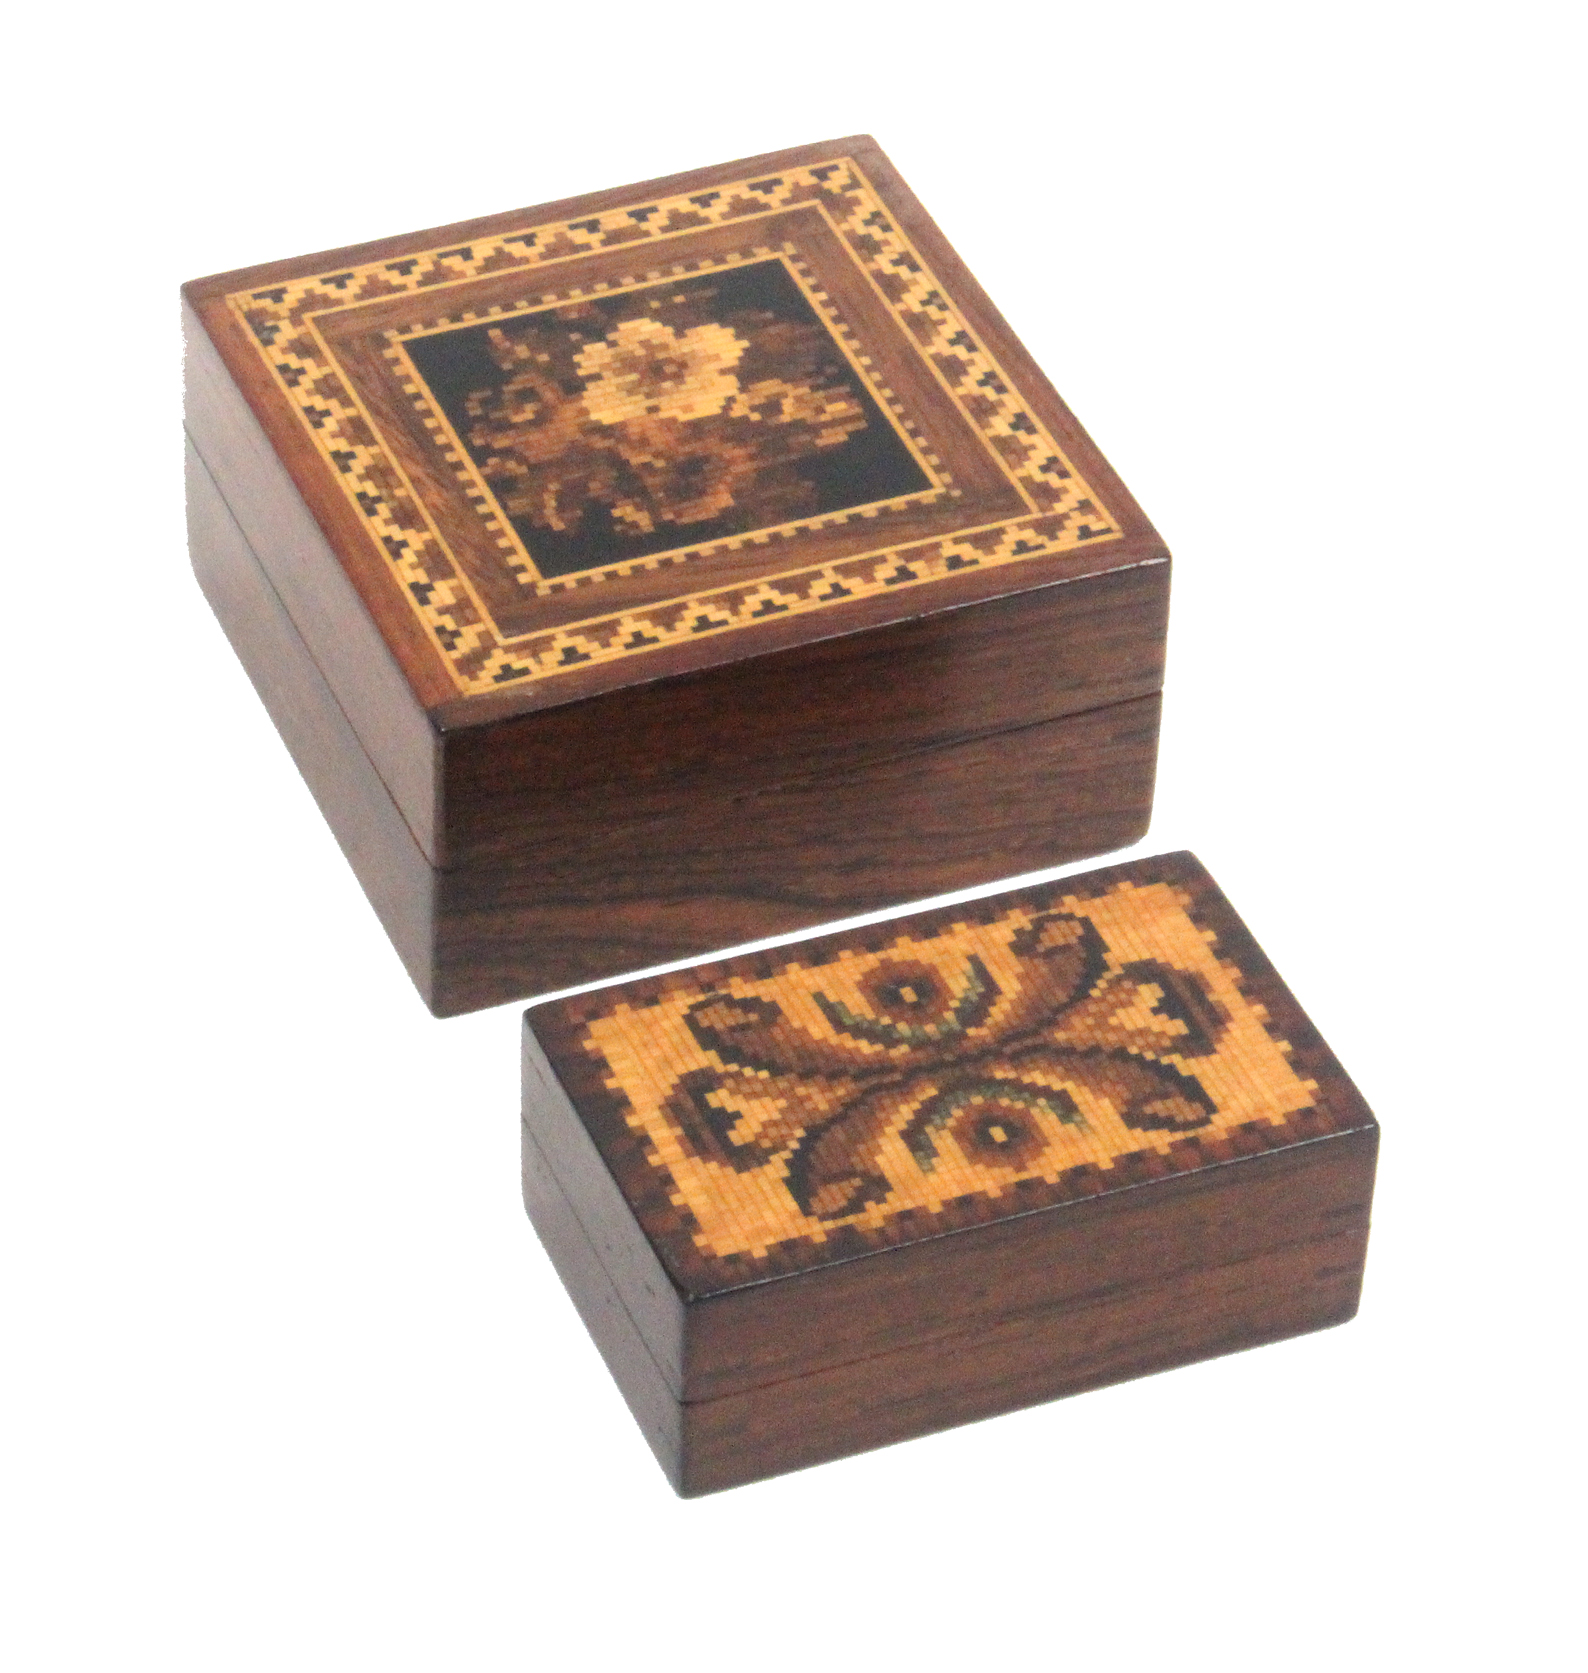 Lot 48 - Two Tunbridge ware rosewood boxes both with lift off lids, one with a floral mosaic panel, 6.2cm